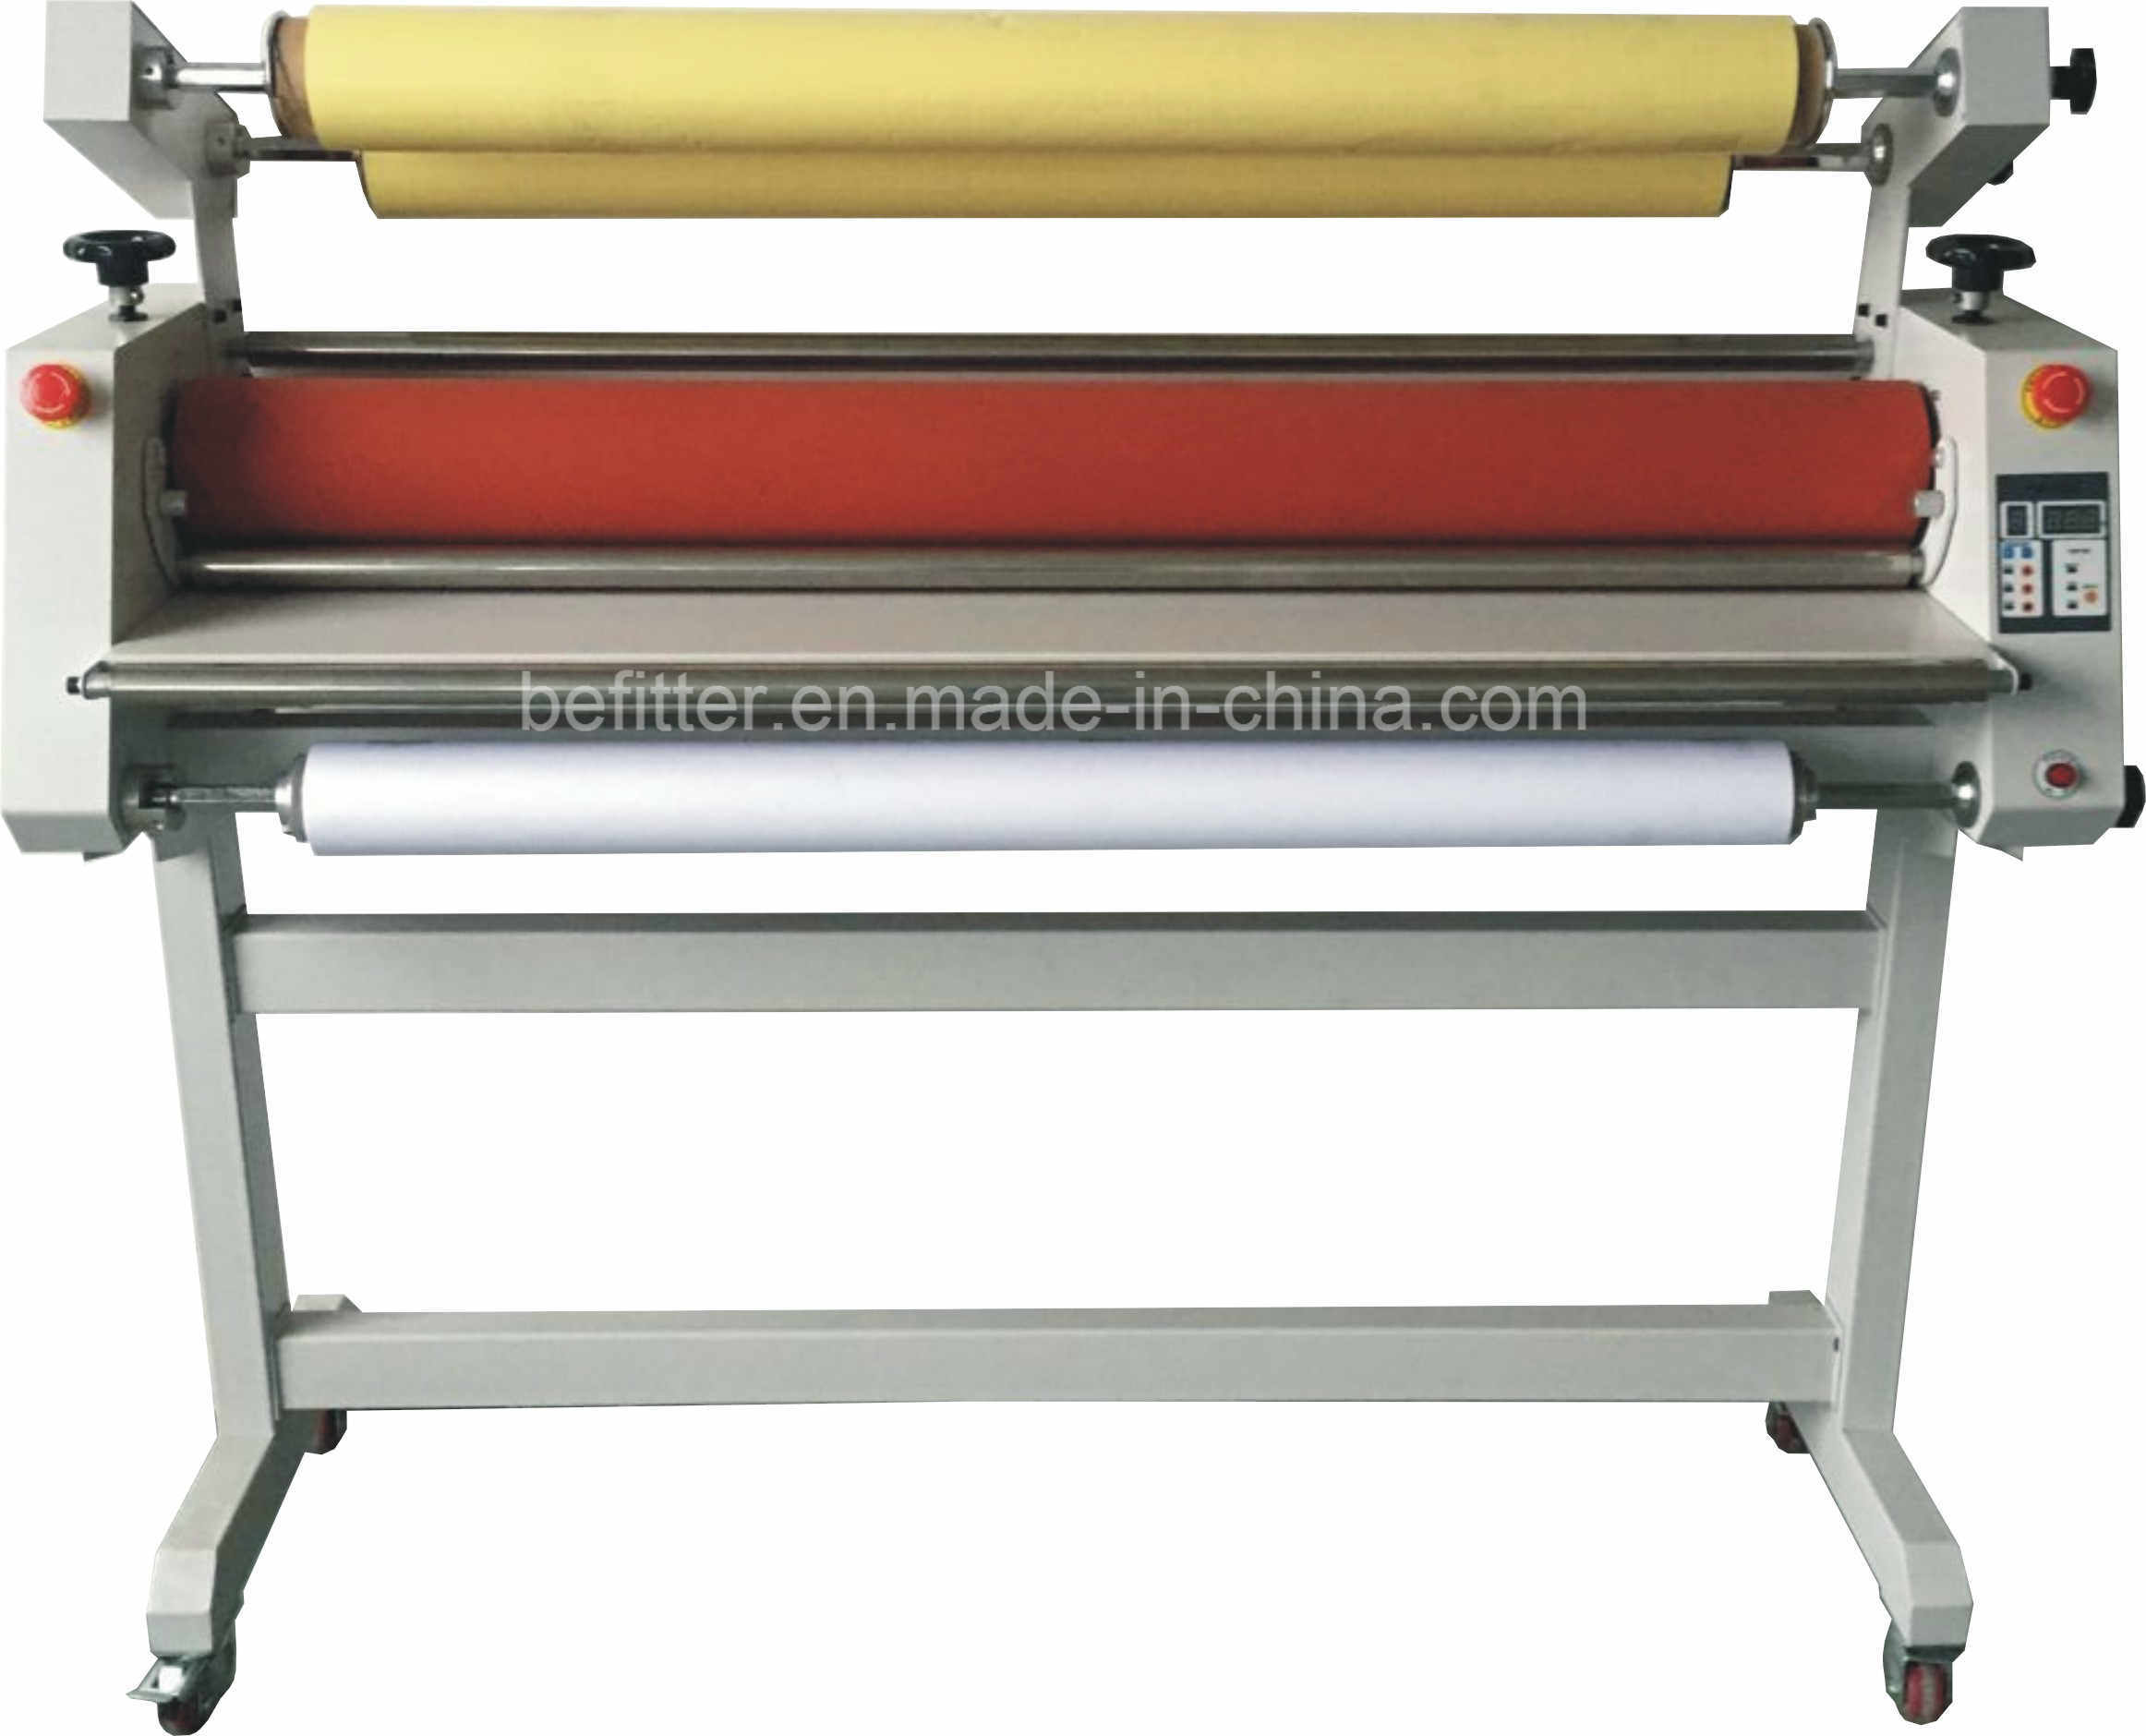 BFT-1300LHII China 1.3m 51′ Automatic Cold Laminator with Low-Heat Assist